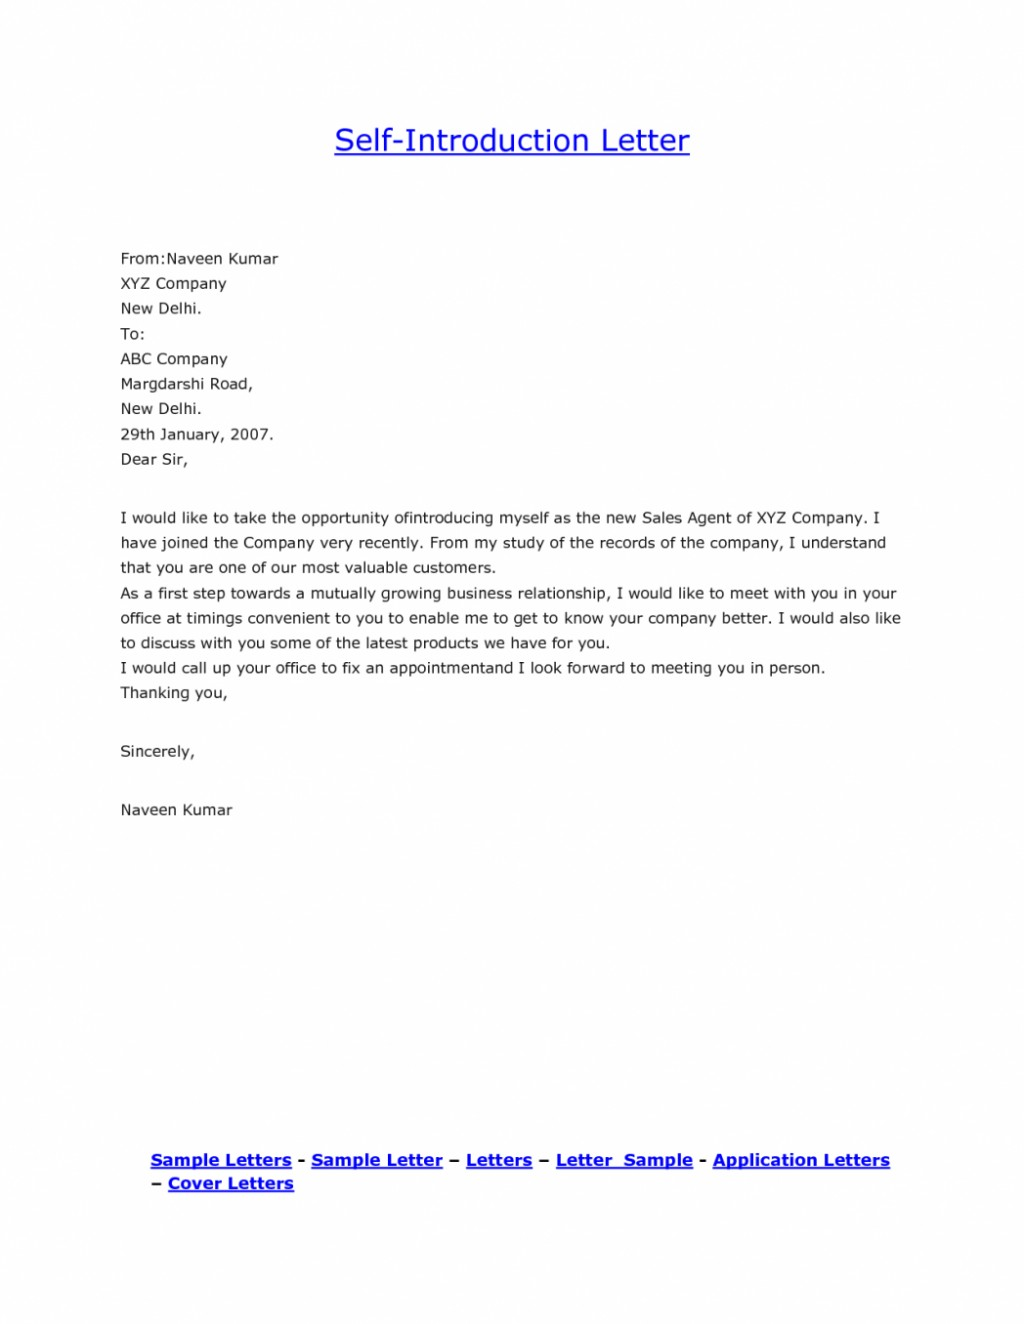 020 Introducing Myself Essay Self Introduction Introduce Personal Letter Template Sample How To Formally Yourself Via Writing 1048x1356 About Striking Apply Job With Body And Conclusion Large